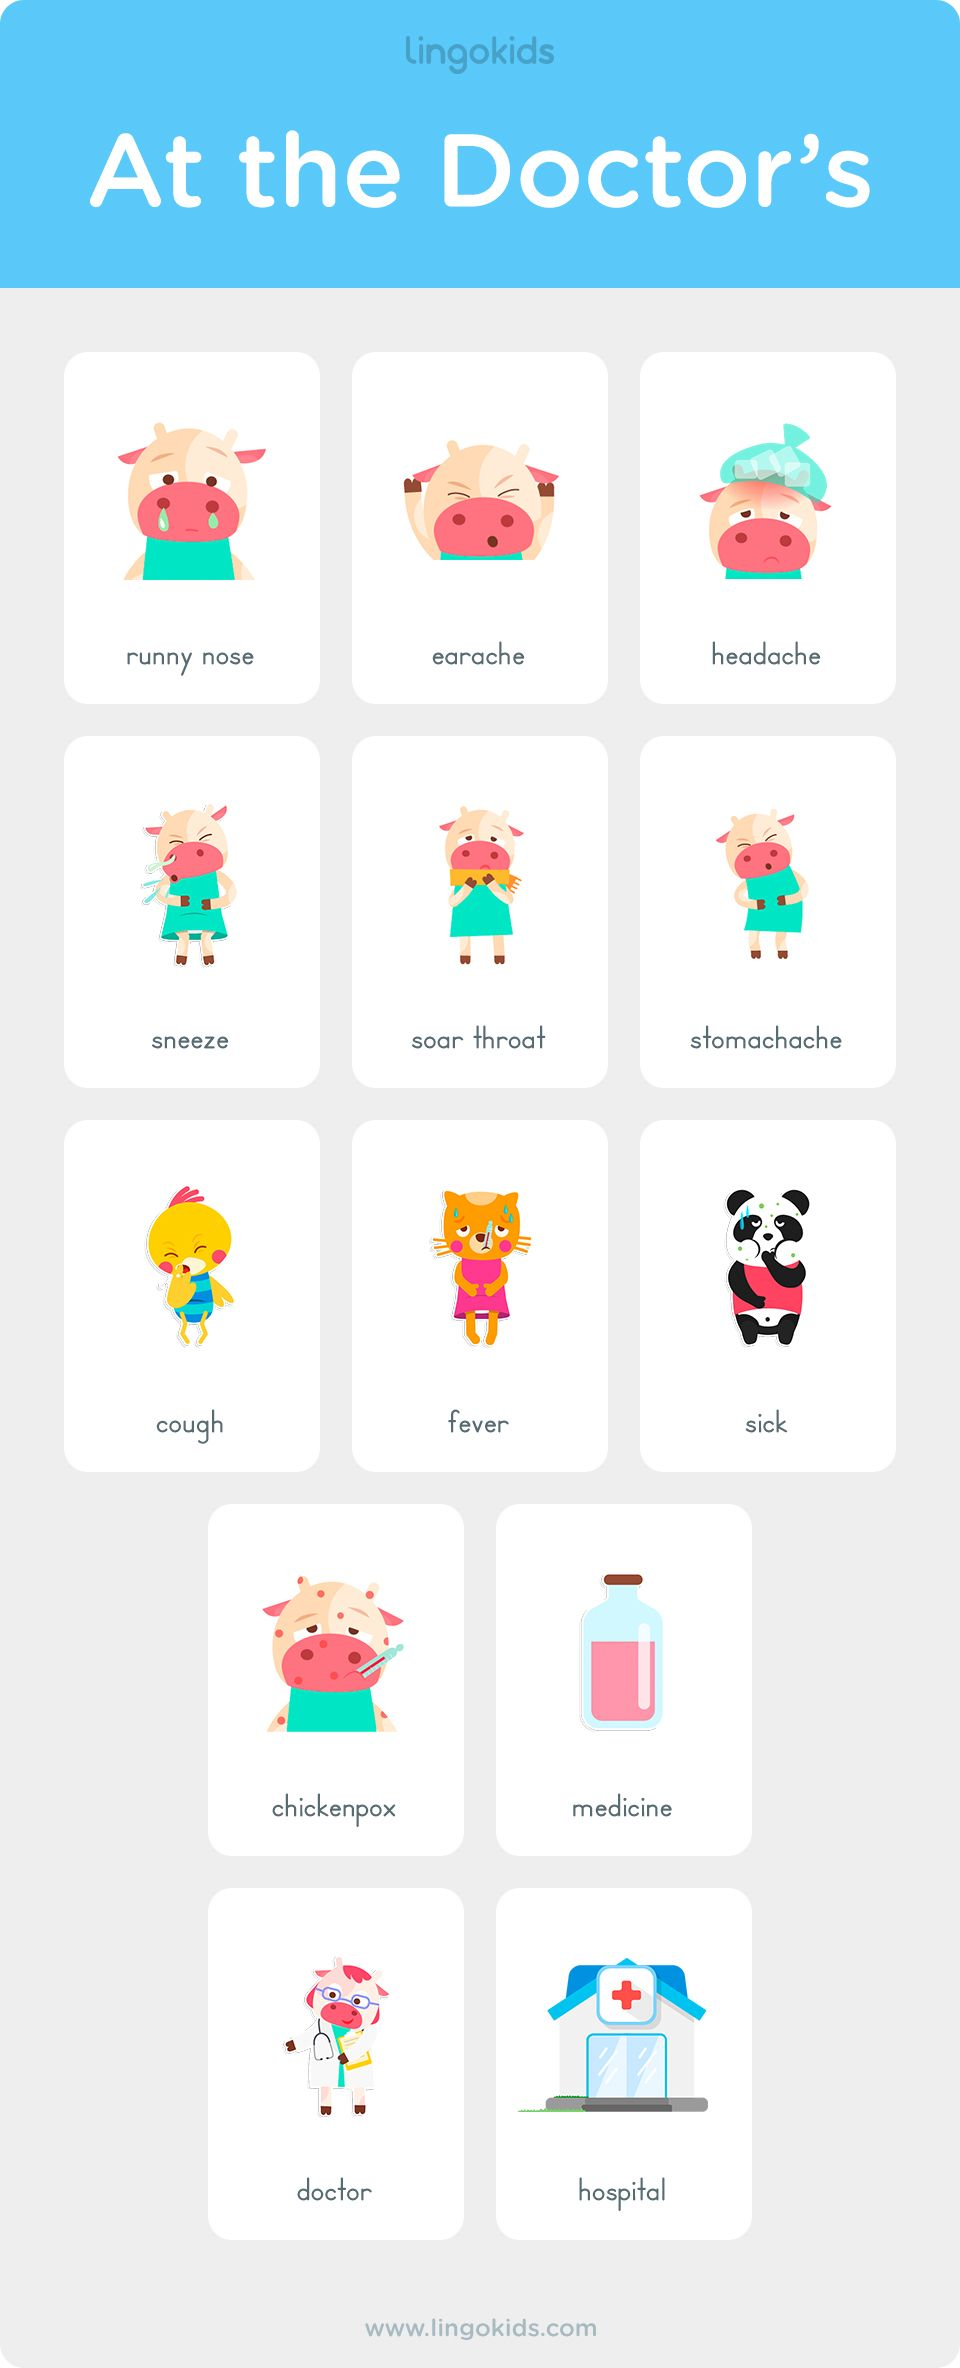 At The Doctor S Vocabulary In English English Games For Kids Teach English To Kids Learn English Kid [ 2368 x 960 Pixel ]